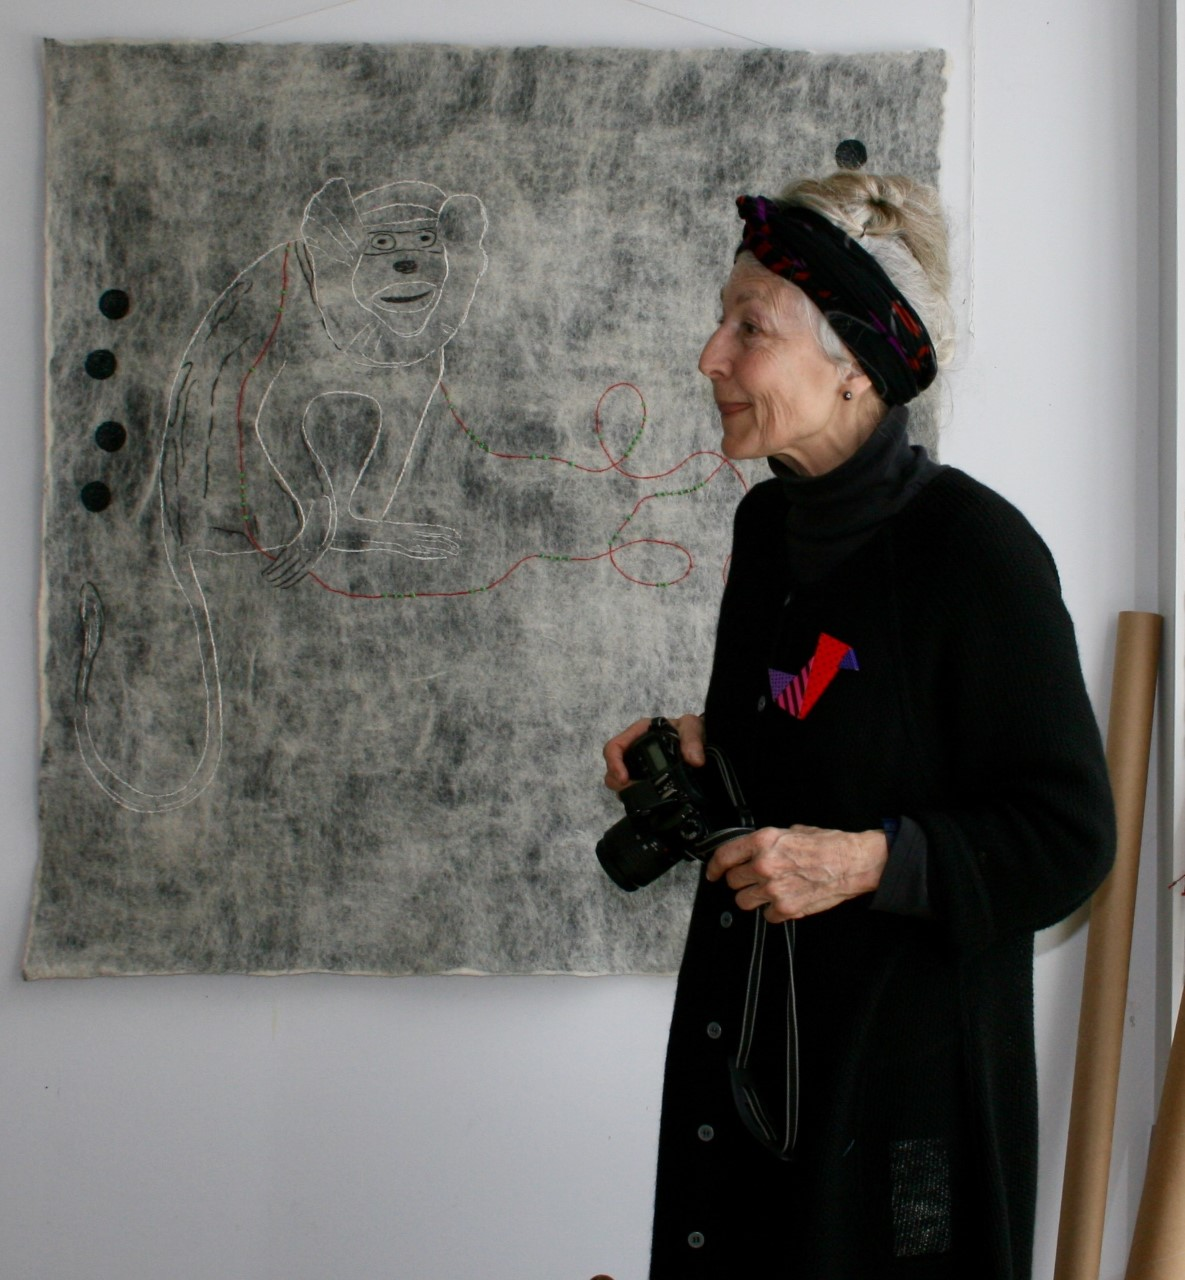 Marianne Erikson, 2008. Photo: Love Jönsson (privately owned image)